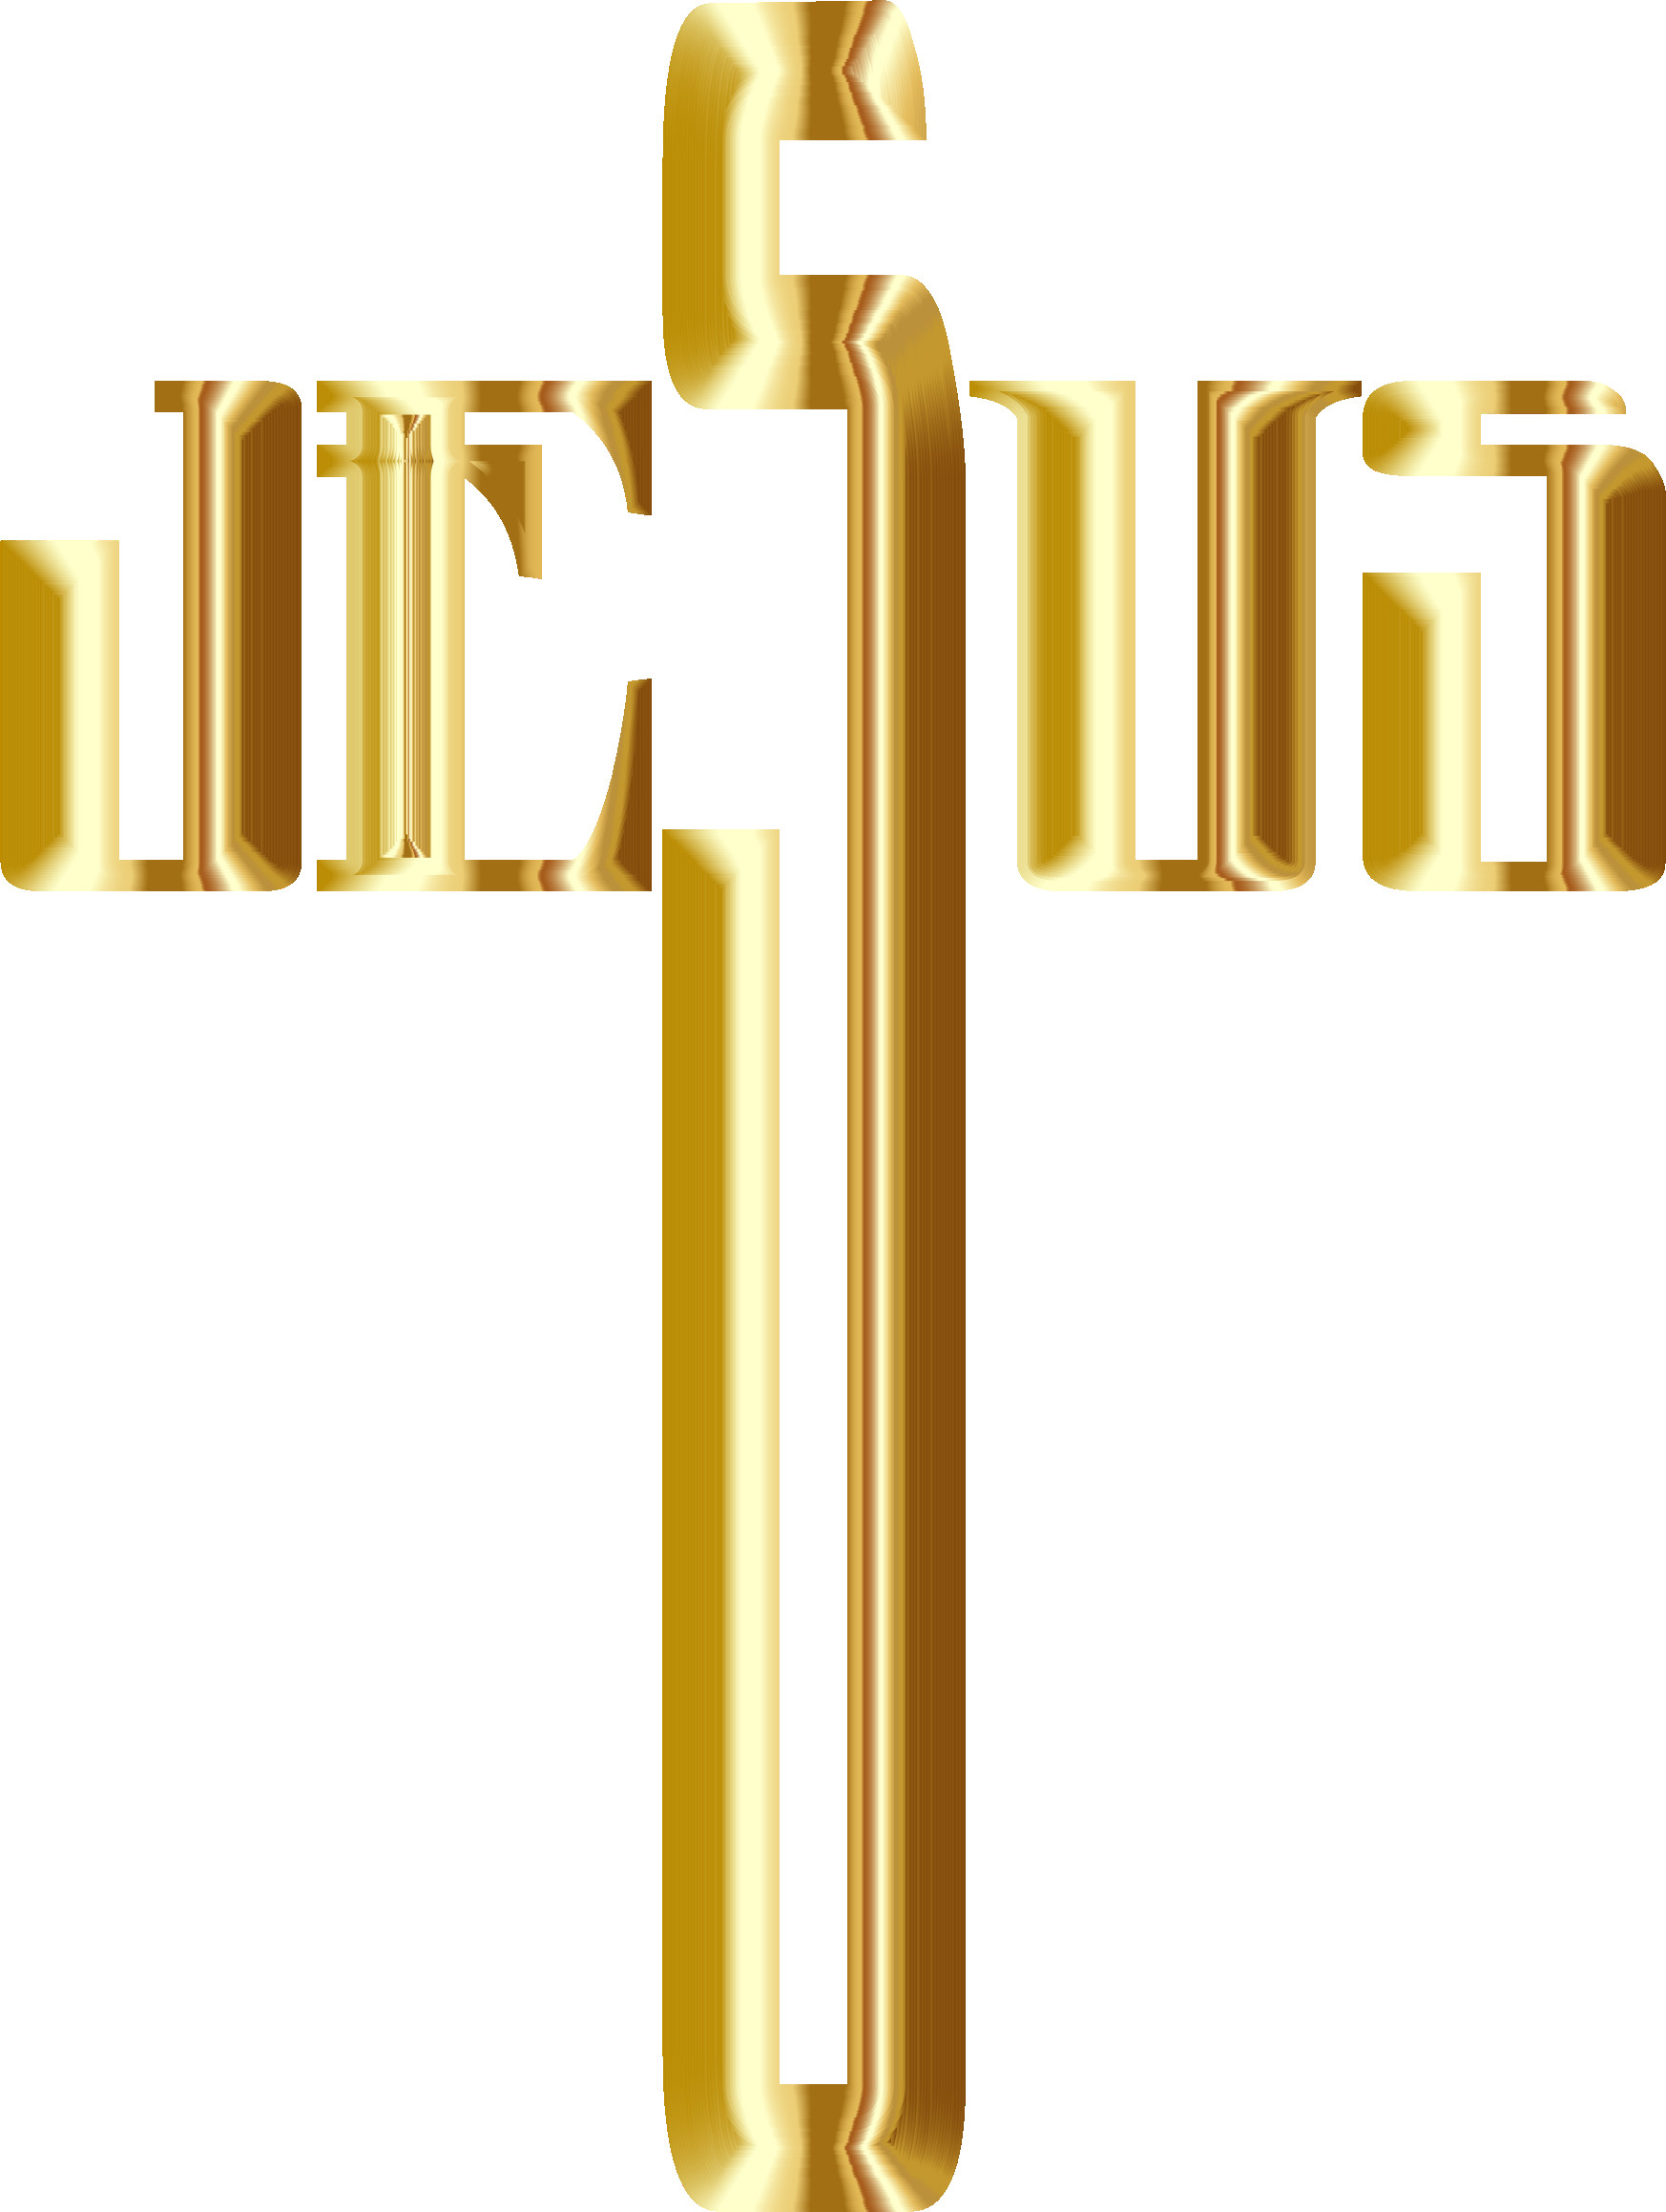 Jesus clipart transparent background. Cross typography gold no